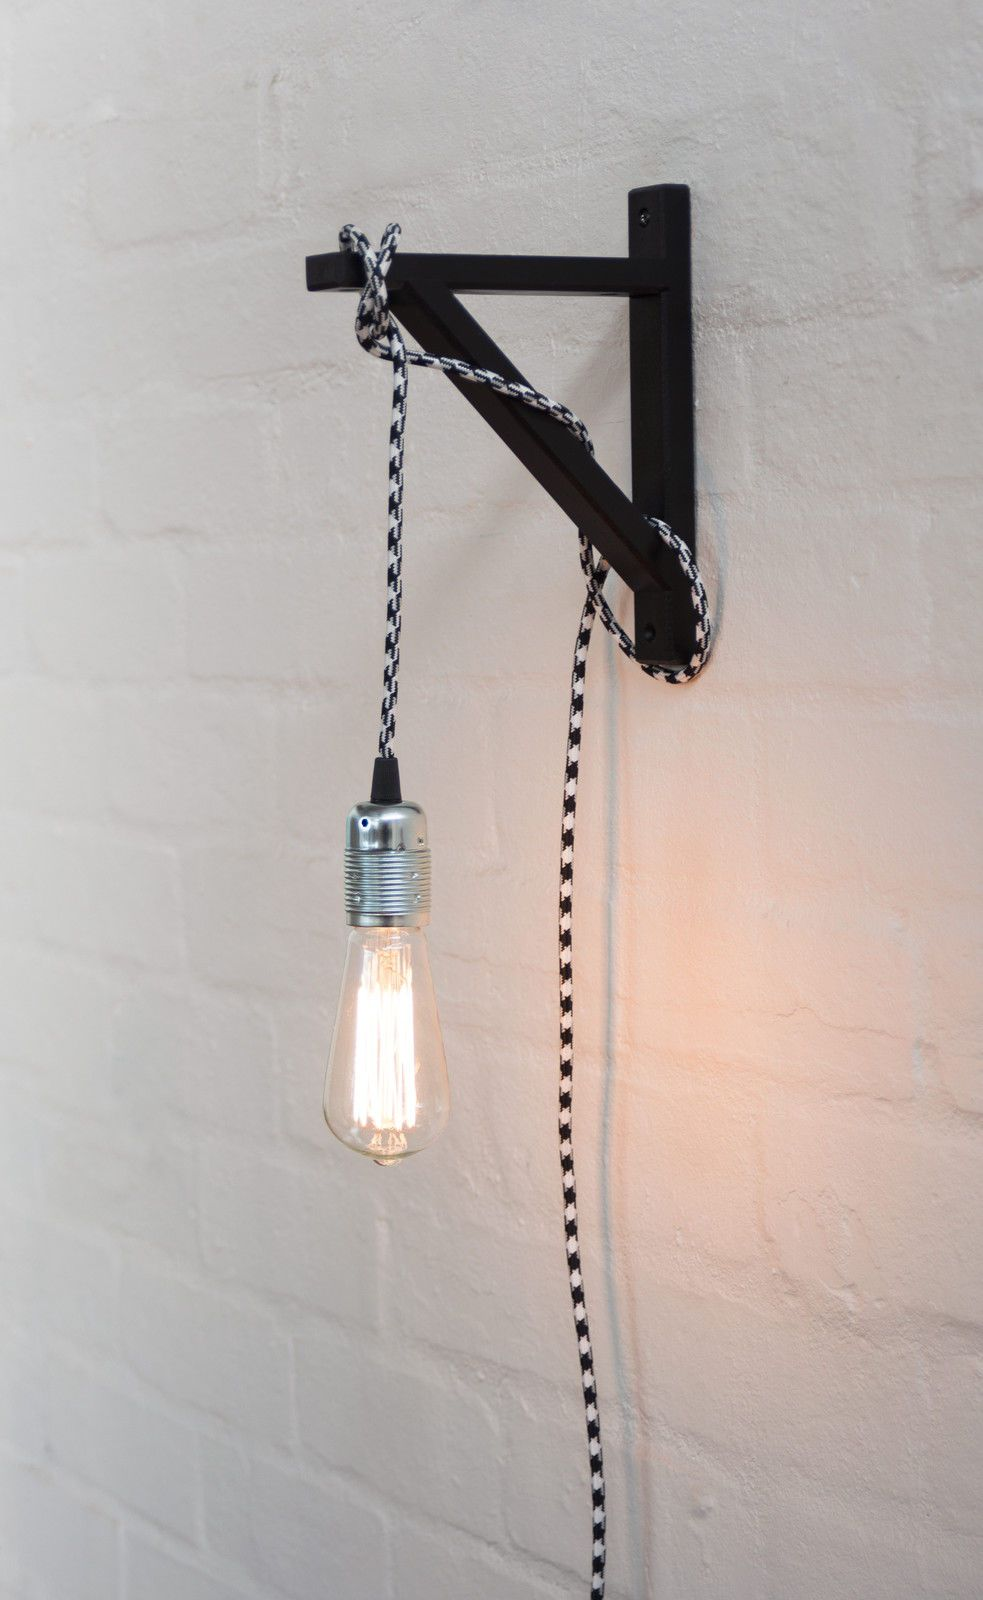 Interior Deco Black Wall Bracket Hook Diy Plug In Cord Wall Light Pendant Design Ebay Wall Lights Bedroom Wall Lights Diy Diy Pendant Light